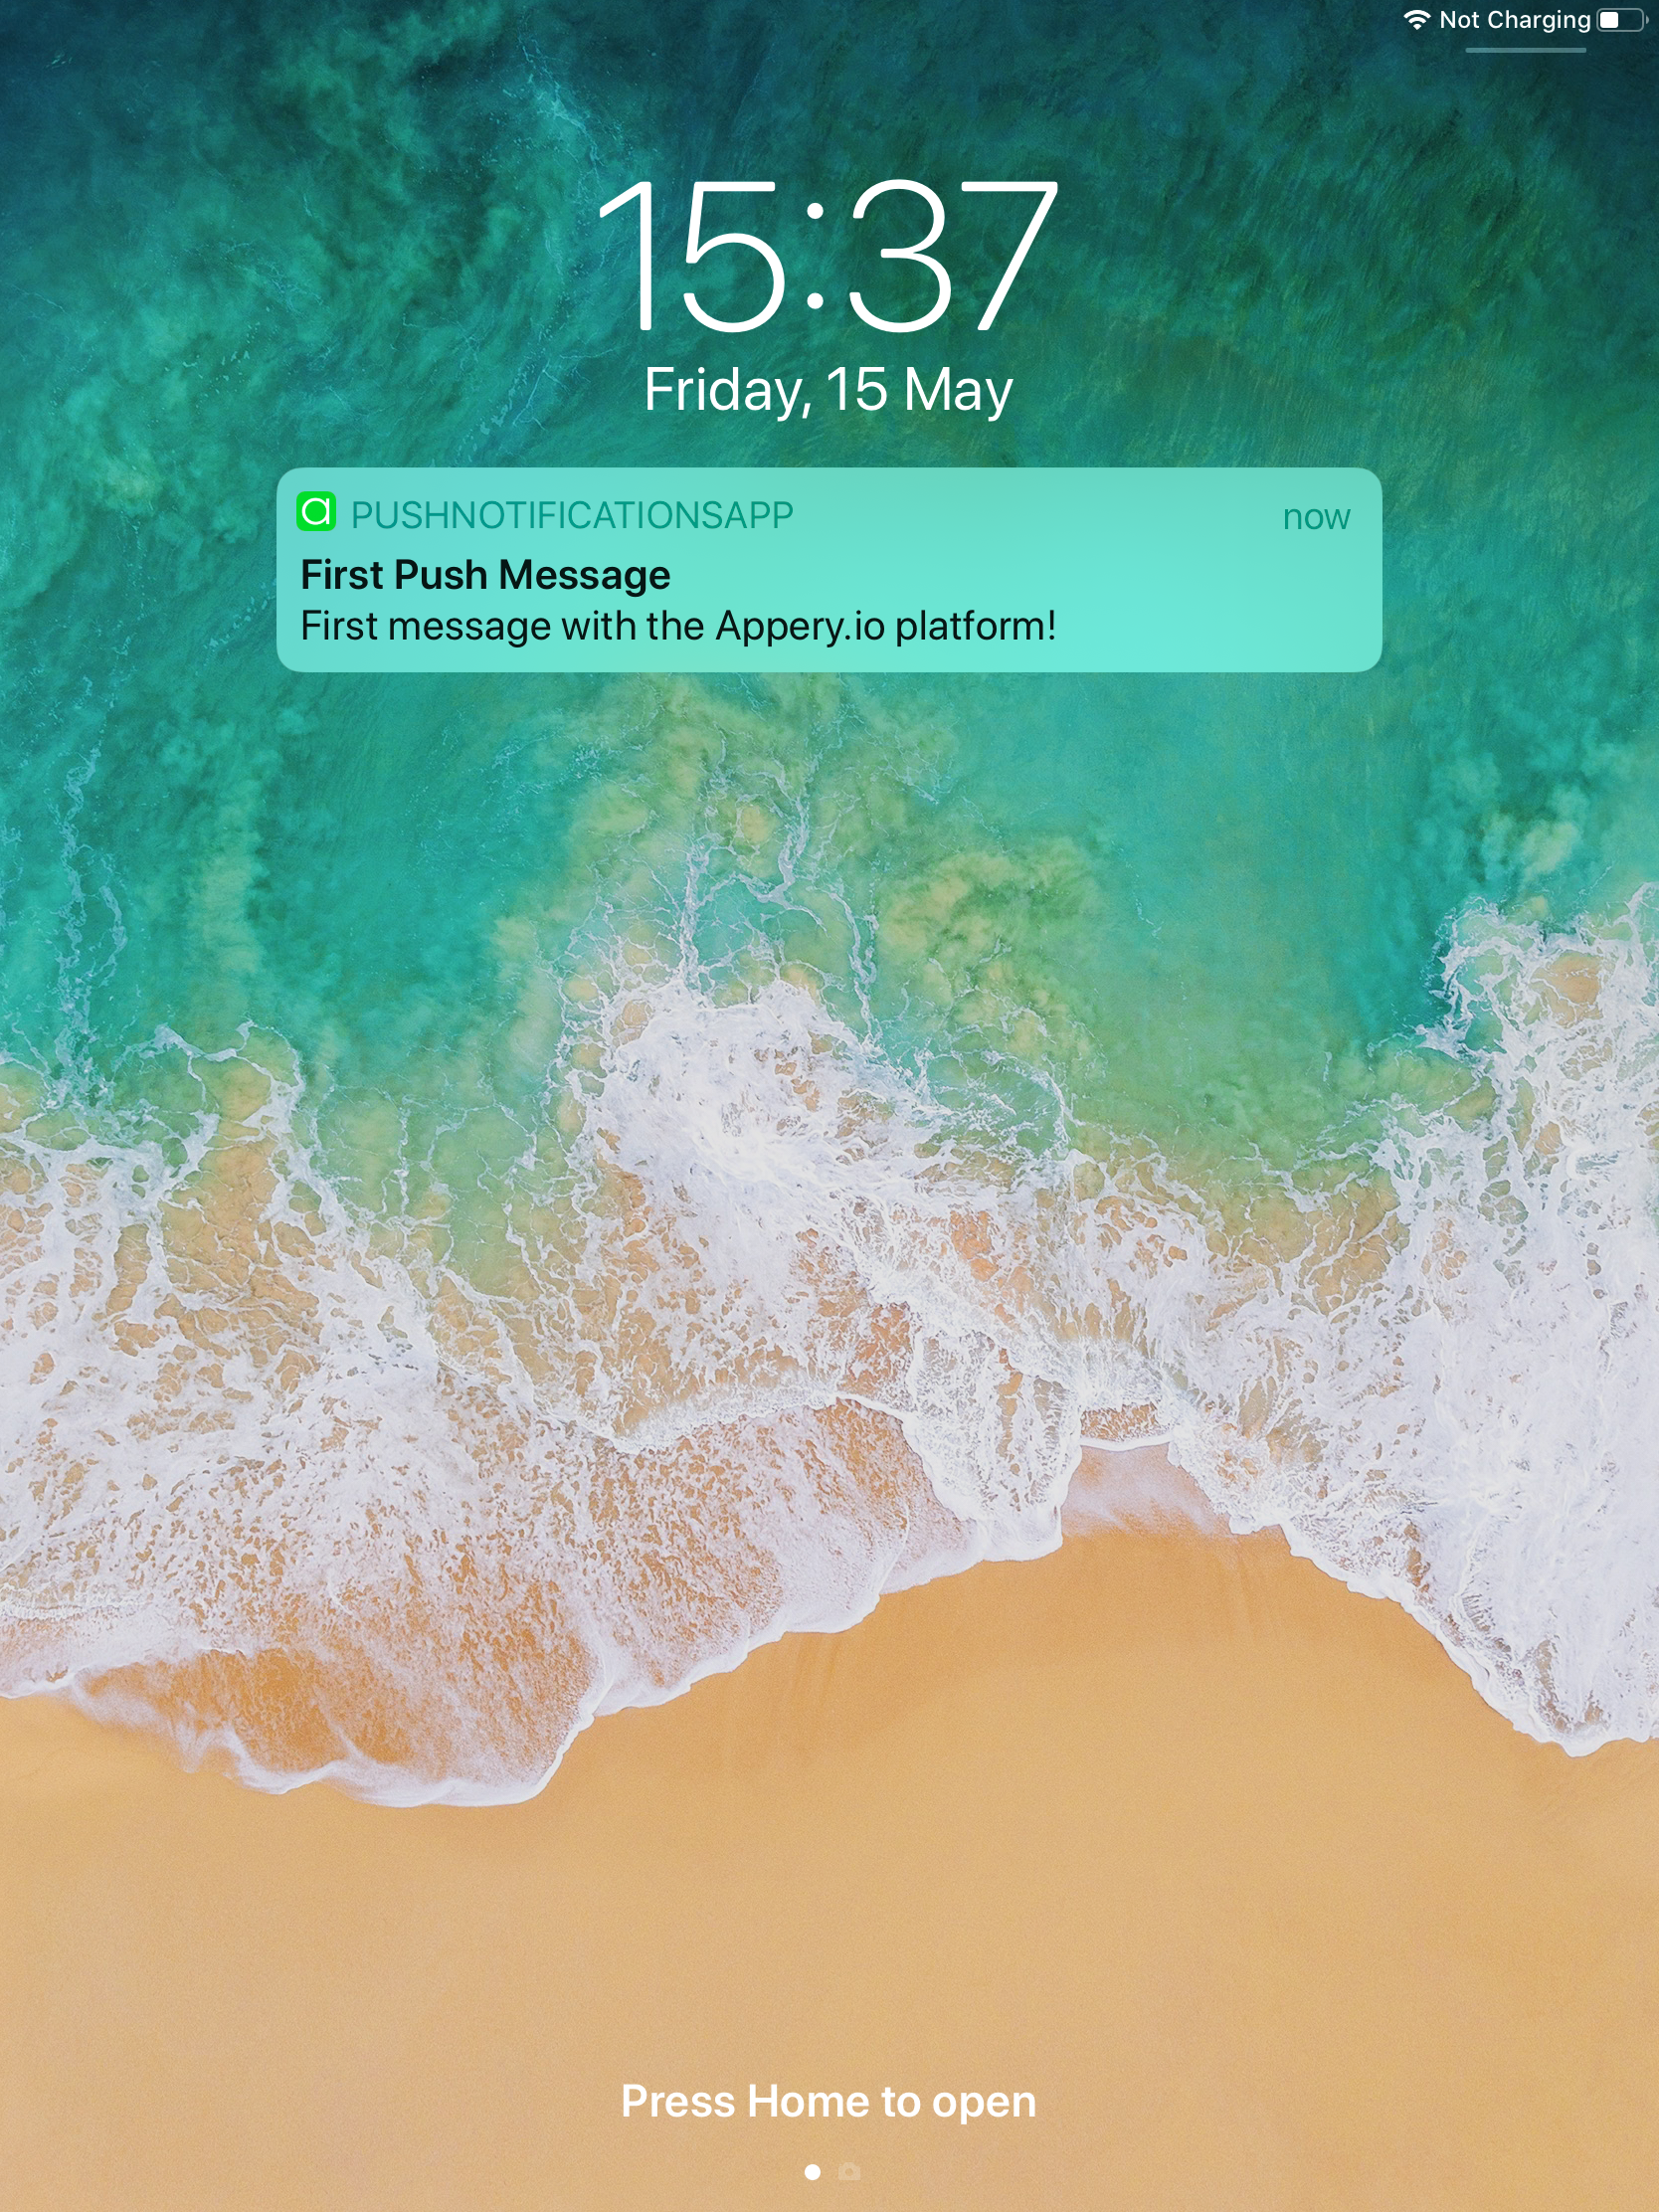 Push Notification message on an iOS device